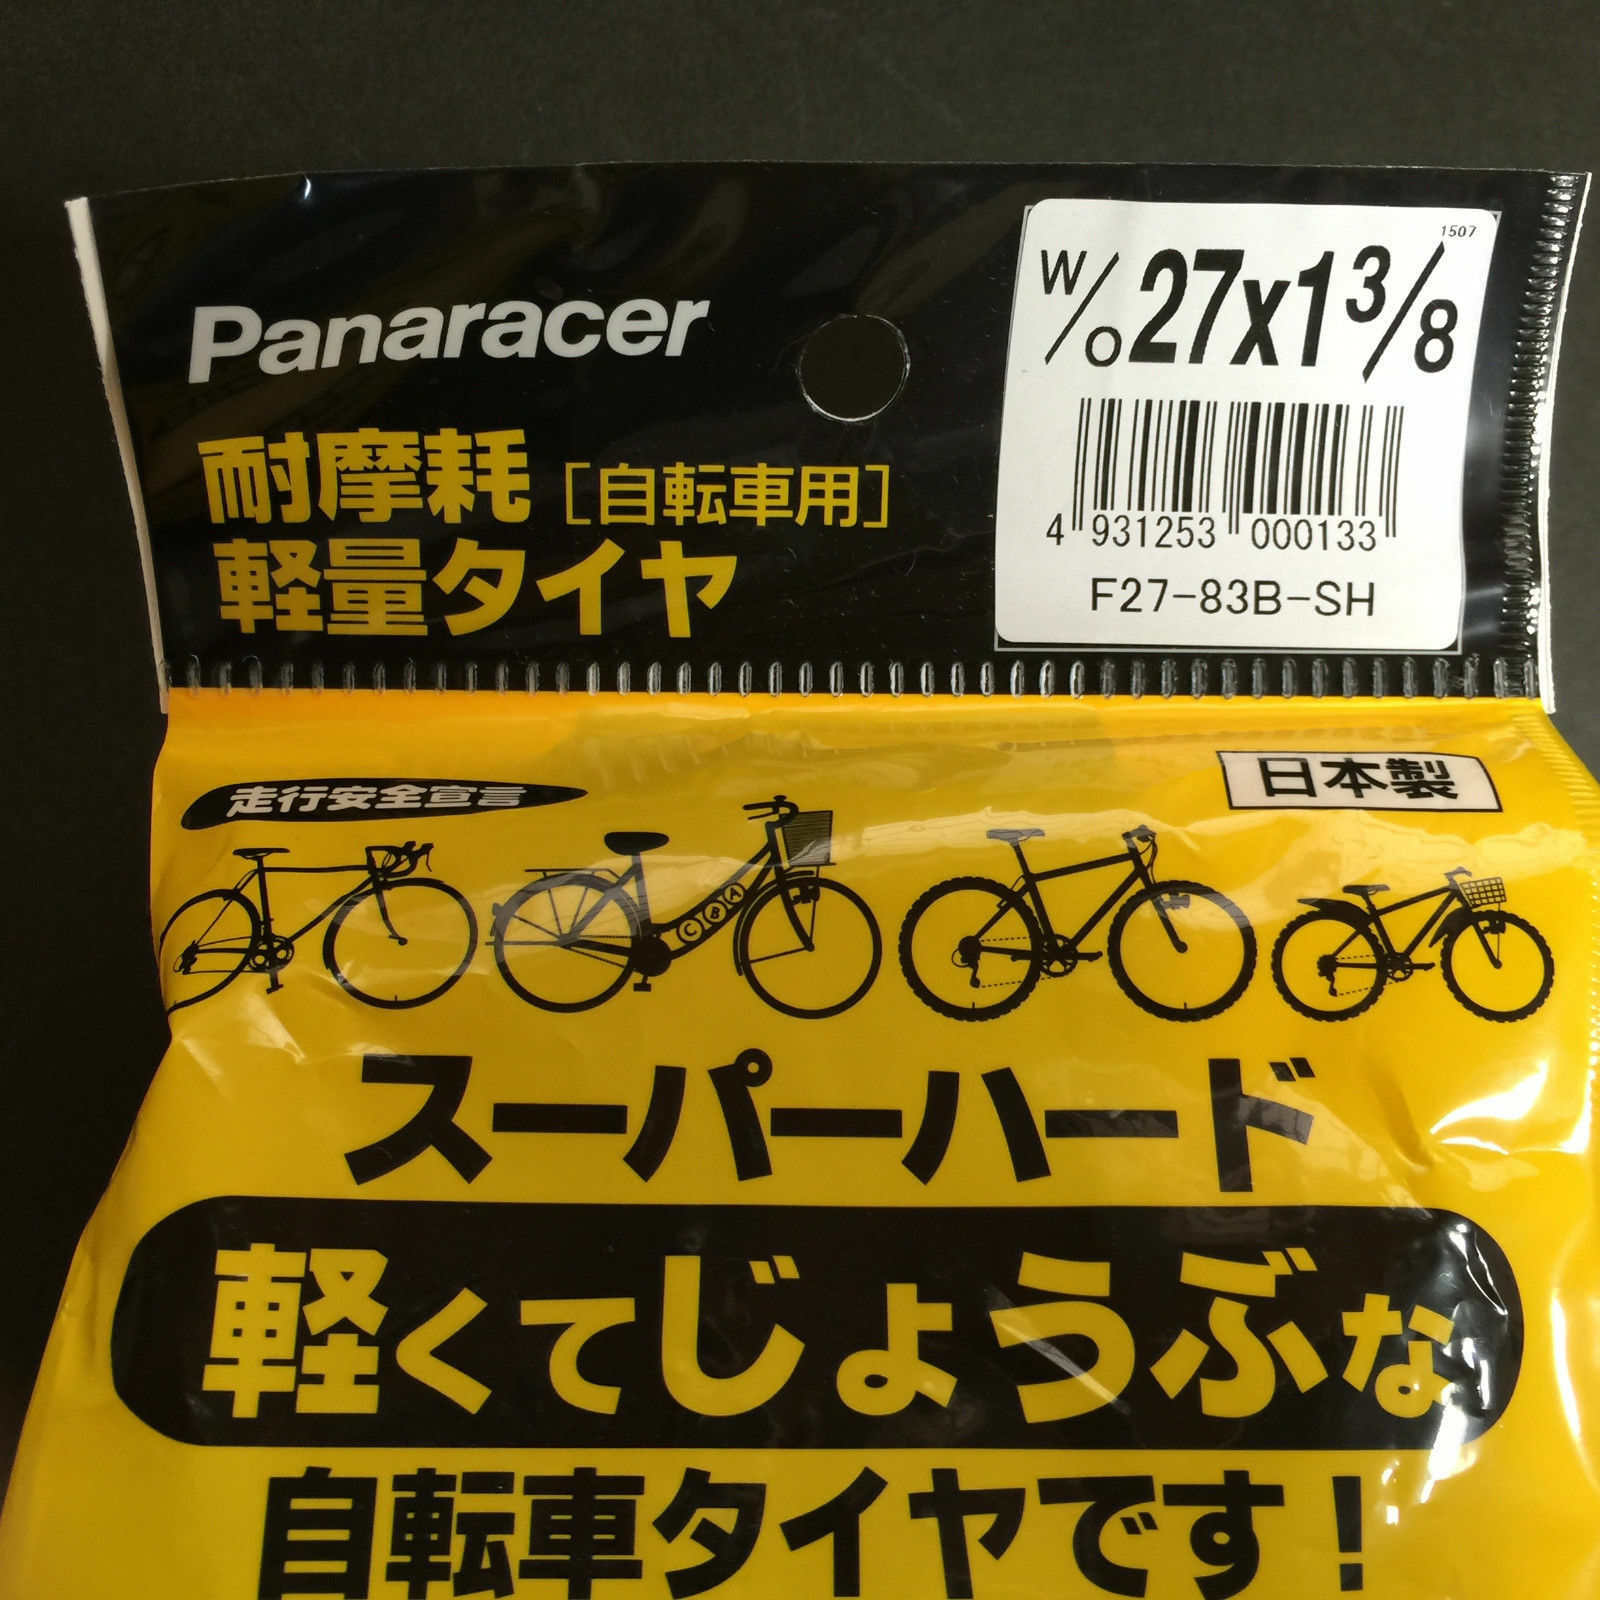 Panaracer Super Hard folding tire Durable wear Bicycle tire Made in japan